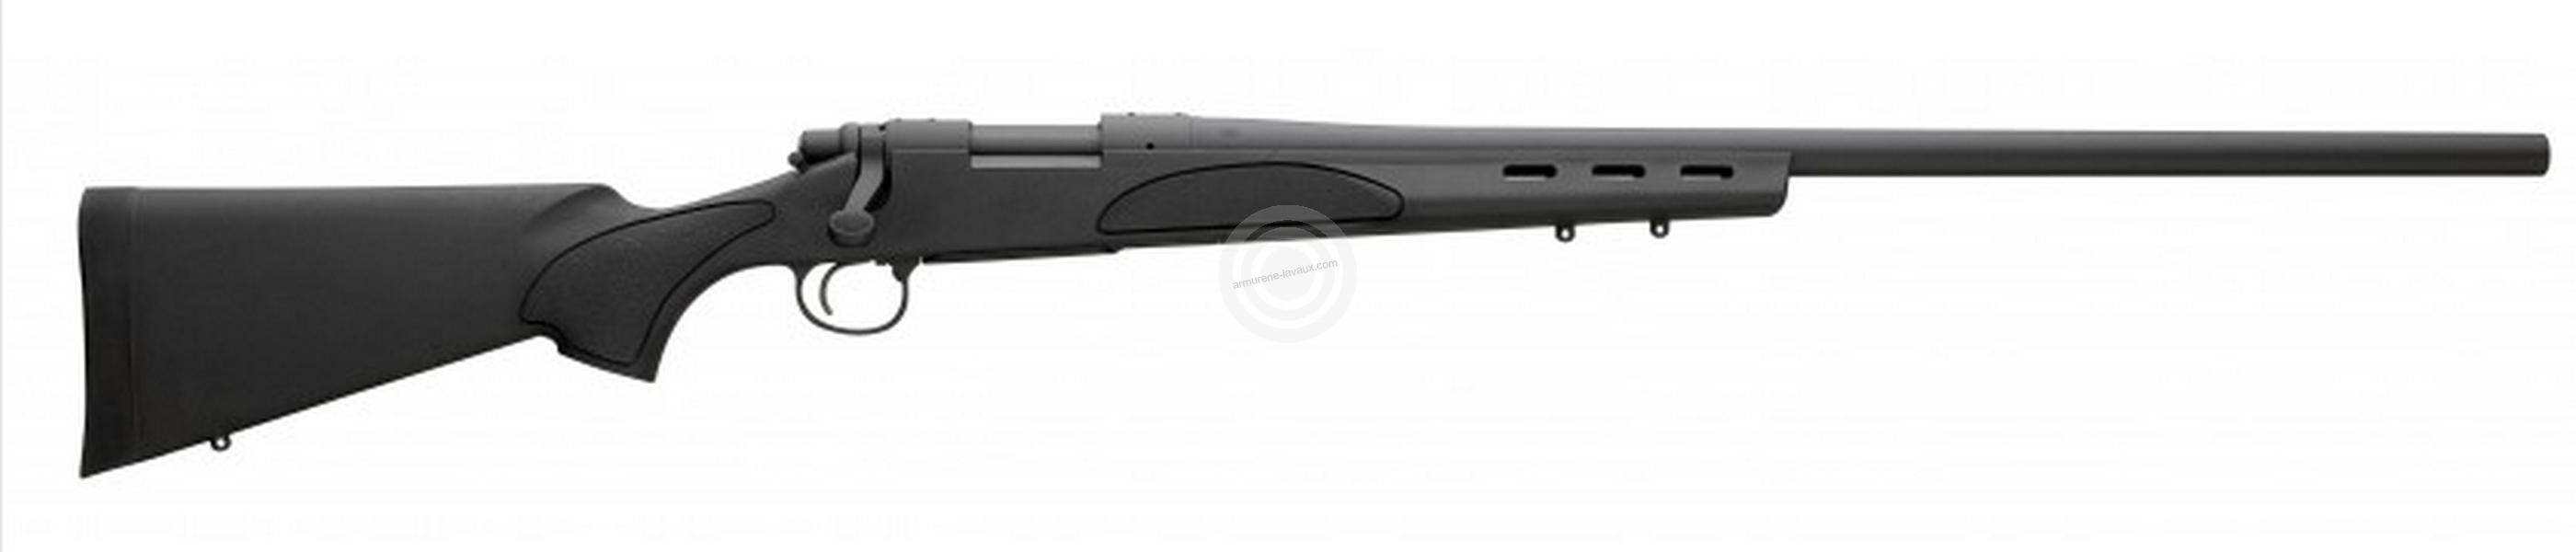 REMINGTON 700 SPS Varmint cal.308 win